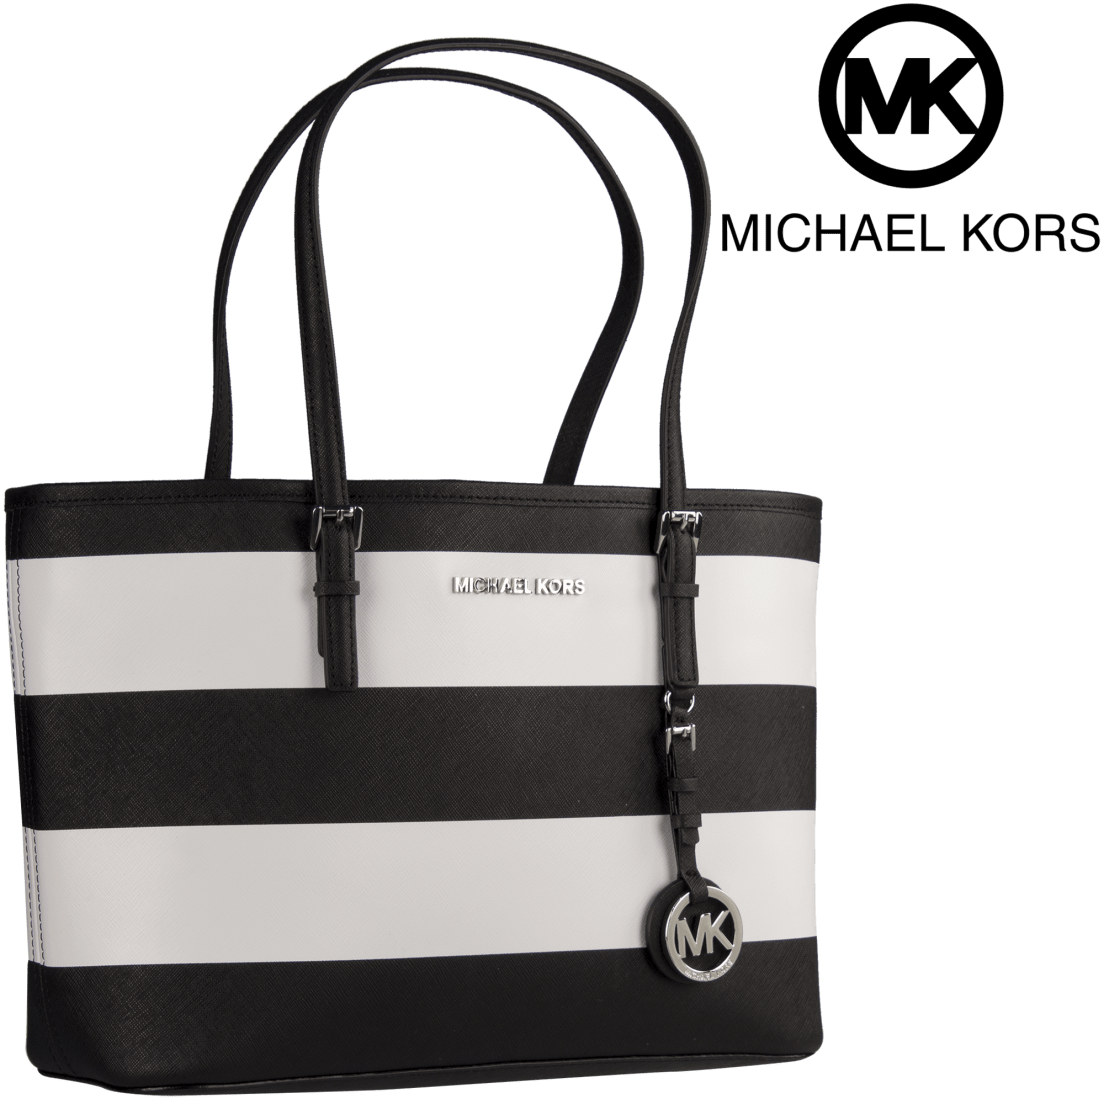 1b37b18d553bc9 Michael Kors Jet Set Travel Small Saffiano Leather Top-Zip Tote in Black &  White